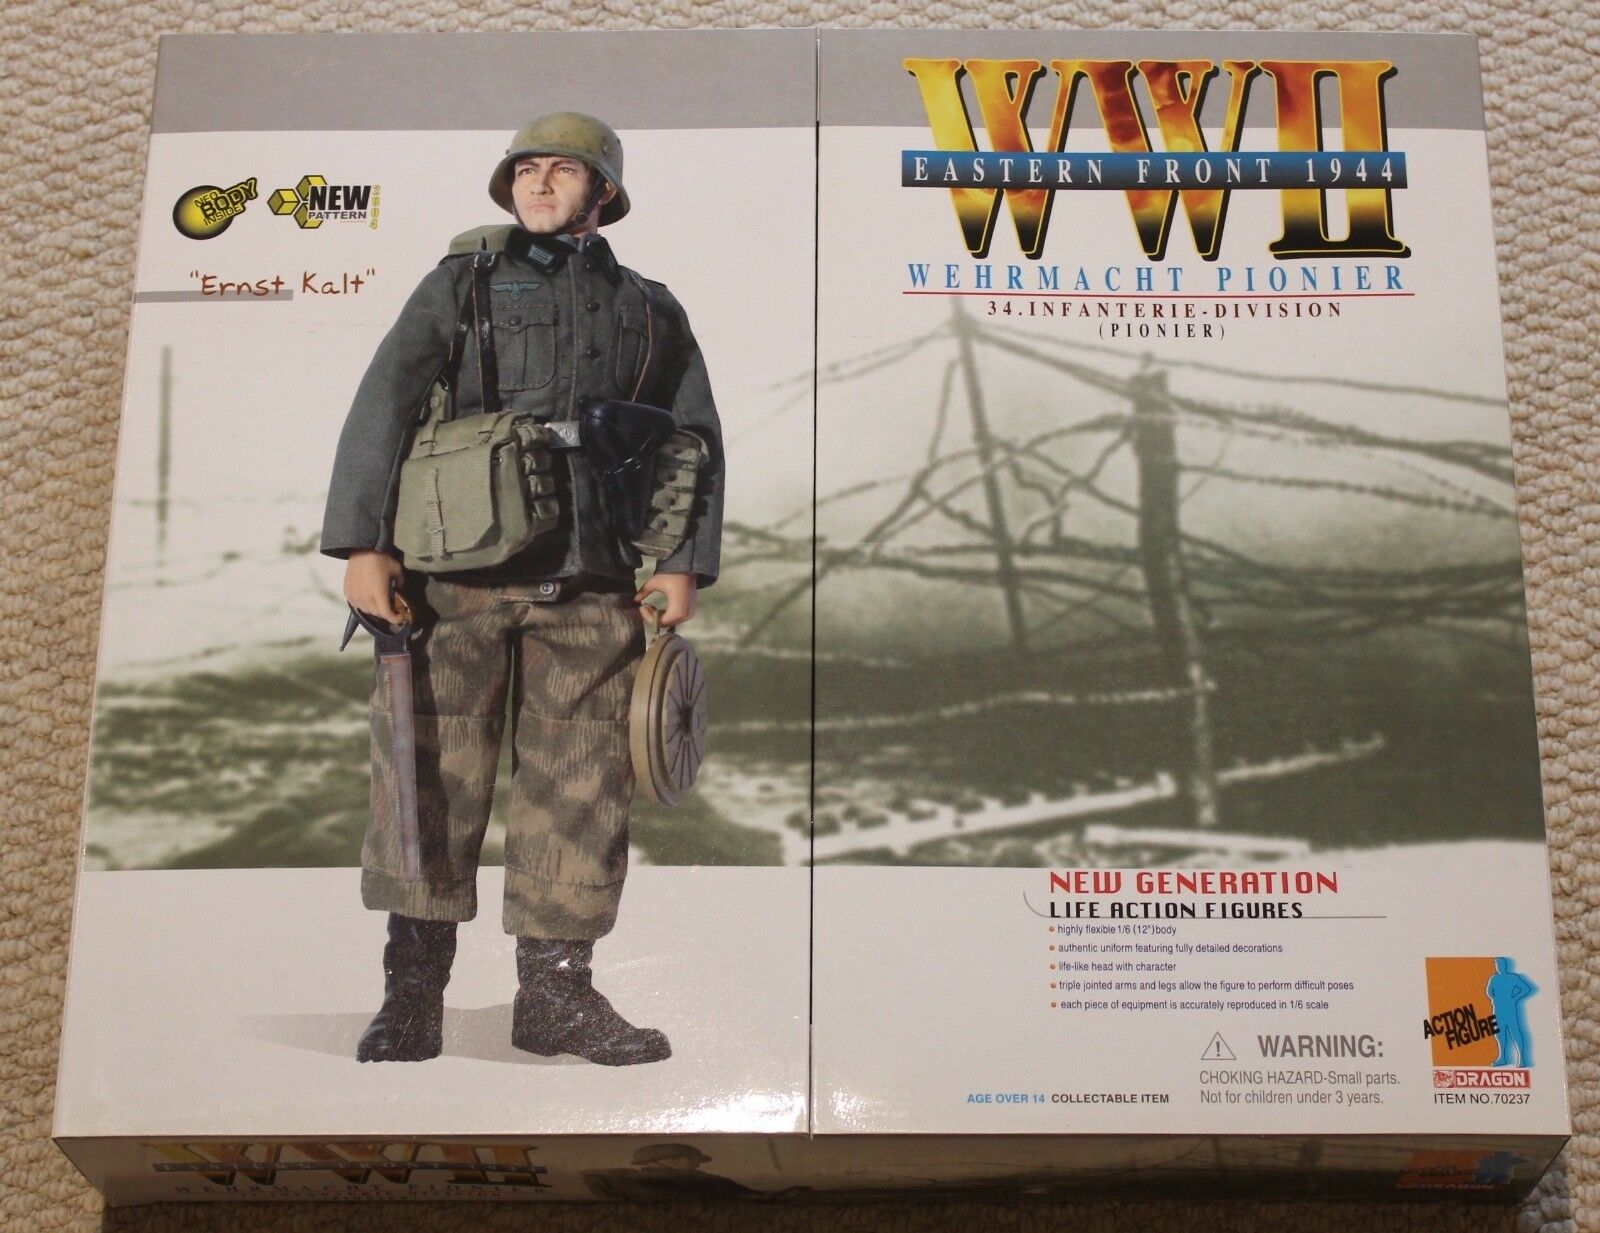 Dragon Action Figure ww11 tedesco Ernst Kalt 1/6 12  in scatola ha fatto Cyber HOT Toy